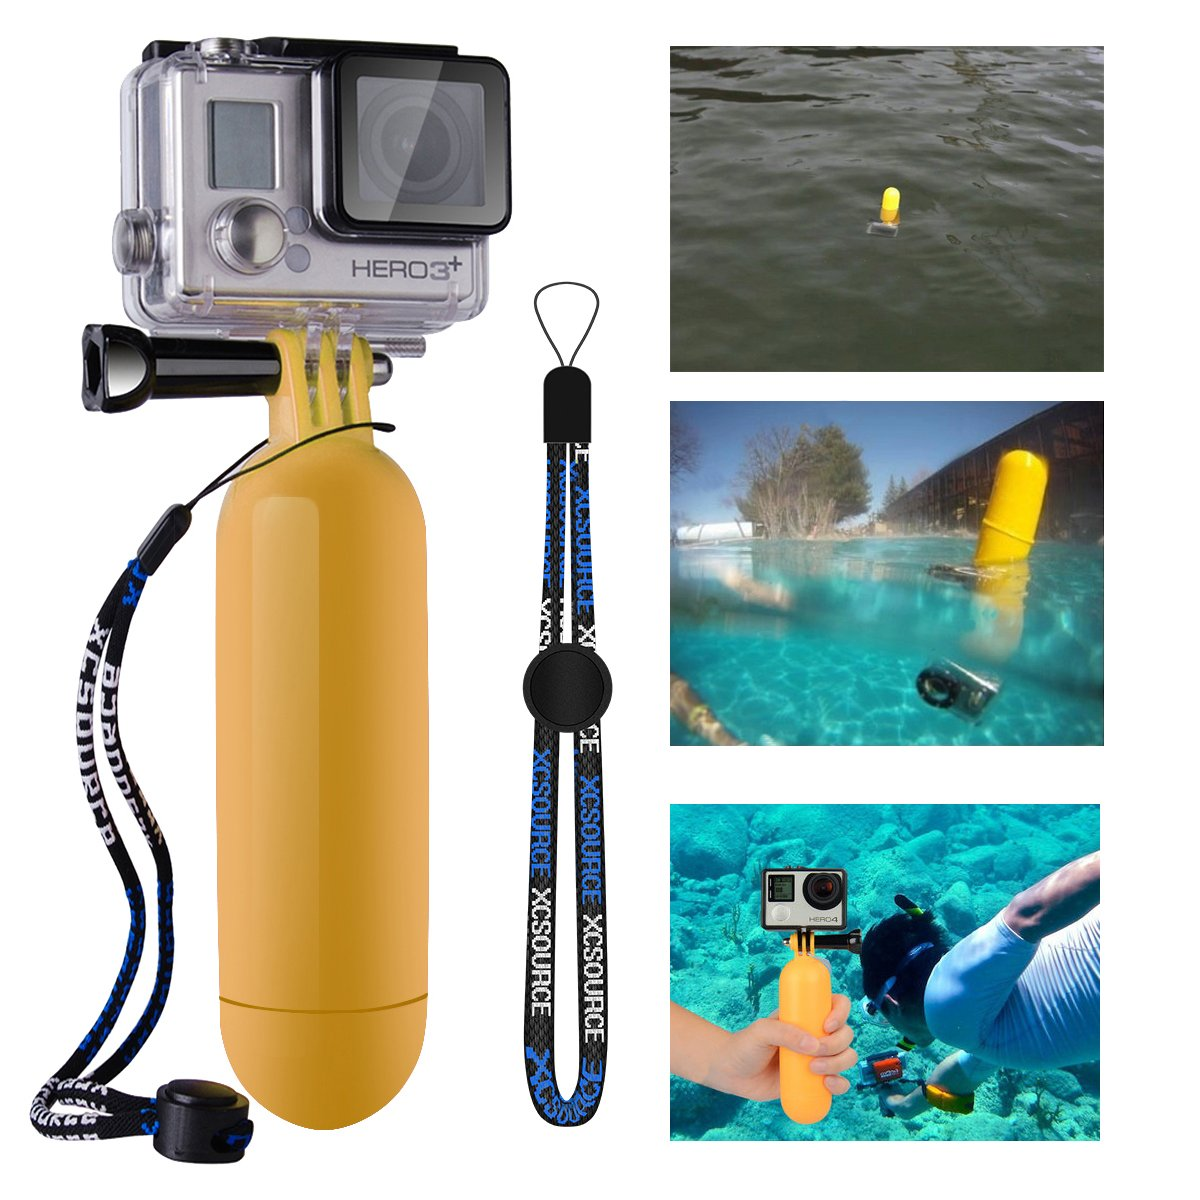 XCSOURCE® Monopod Diving Floaty Floating Hand Grip Handle + Screw + Wrist Strap Accessory Float For Gopro Hero 2 3 3+ Yellow OS97 4894479114179